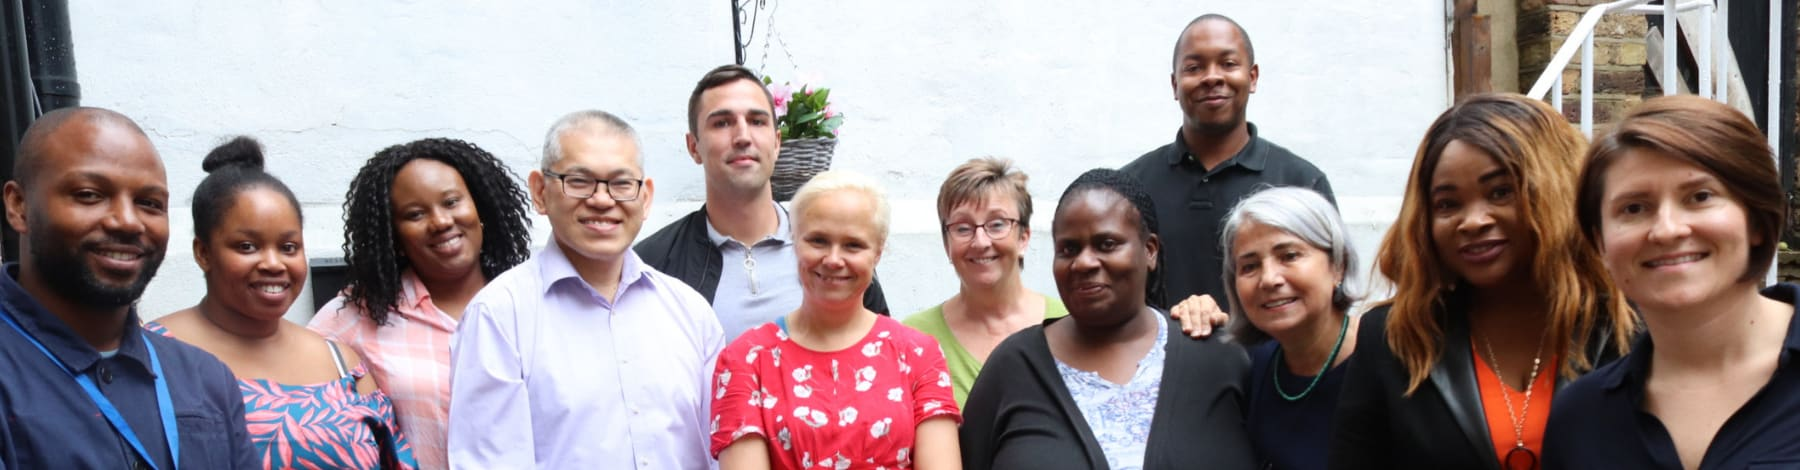 Hestia launches new dedicated service for women in RBKC